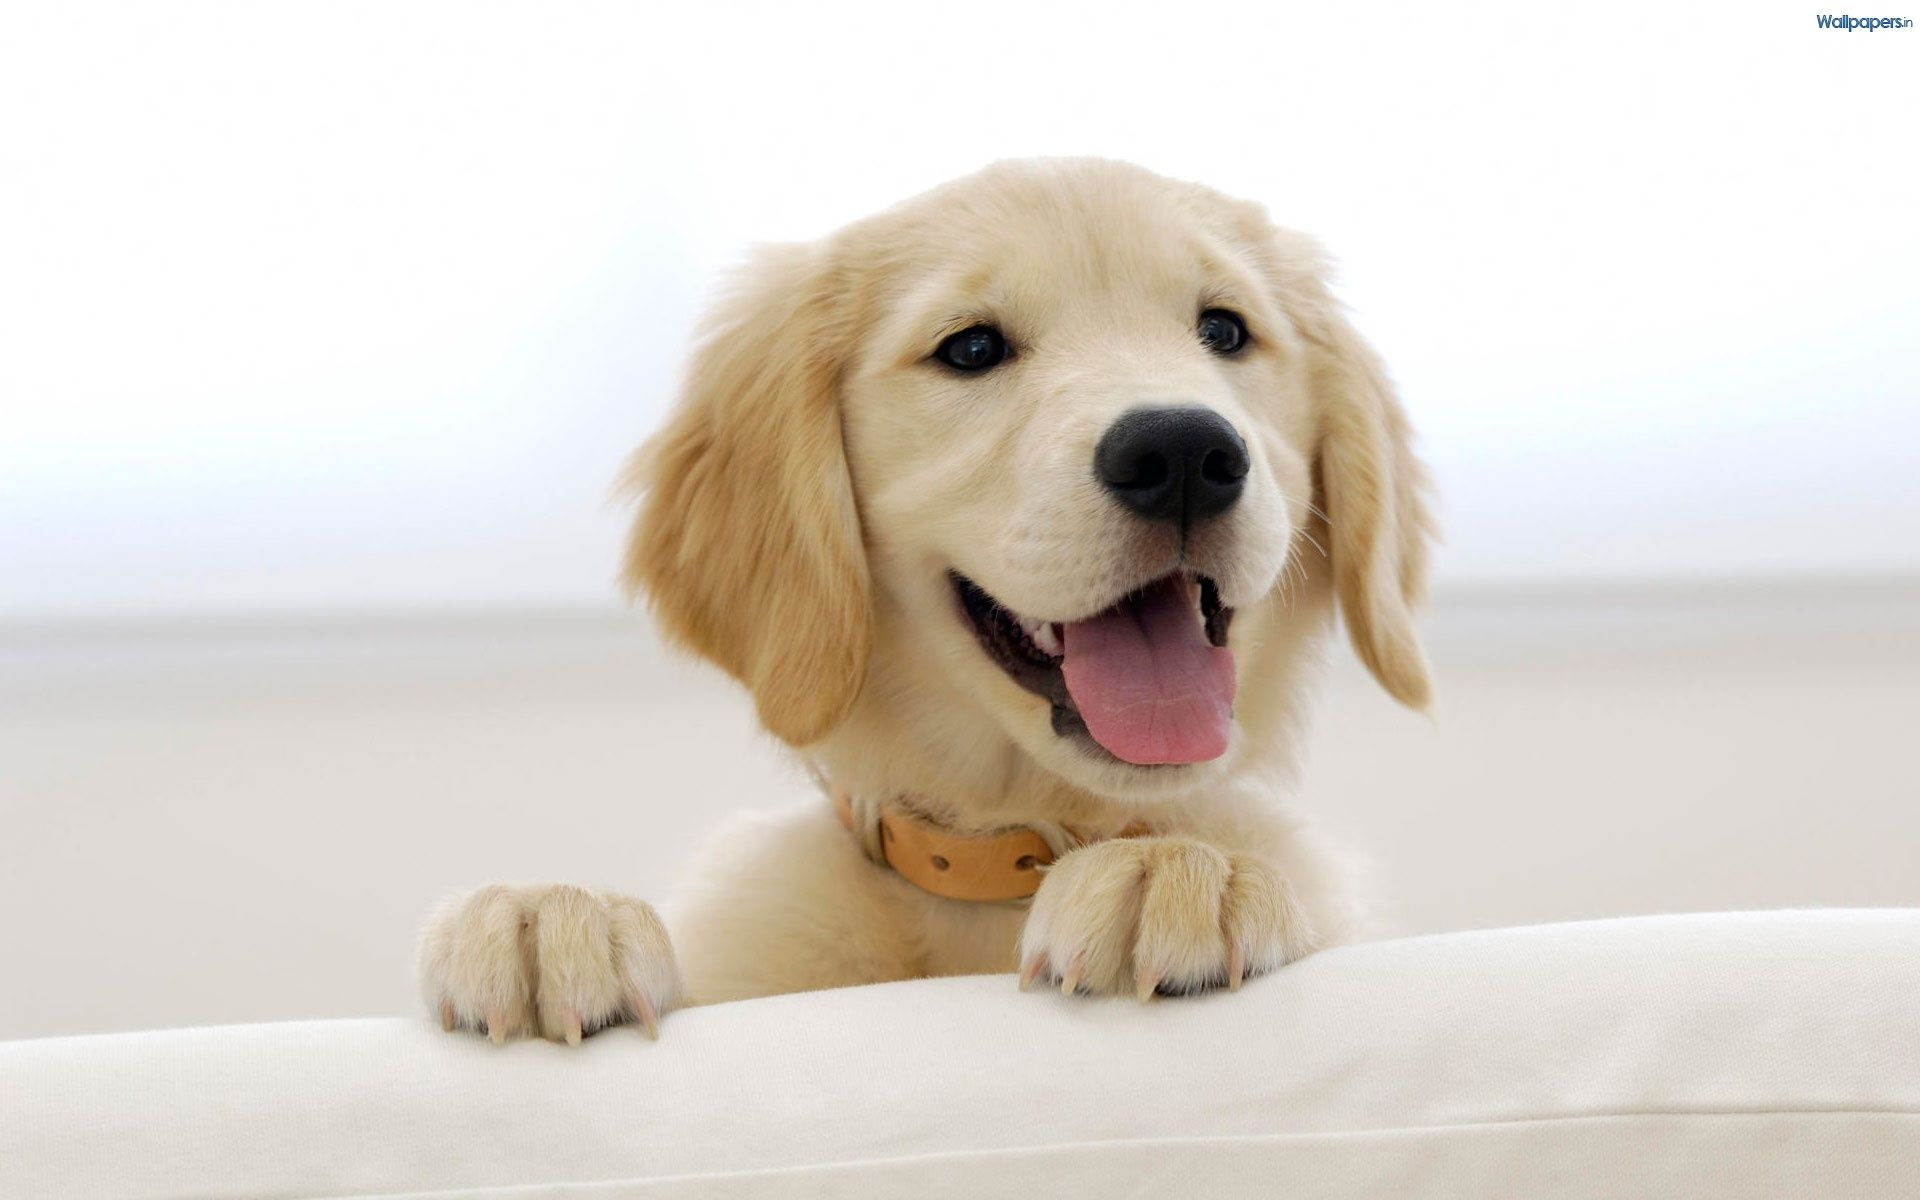 The Top 10 Cutest Dog Breeds Number 10 Golden Retriever The